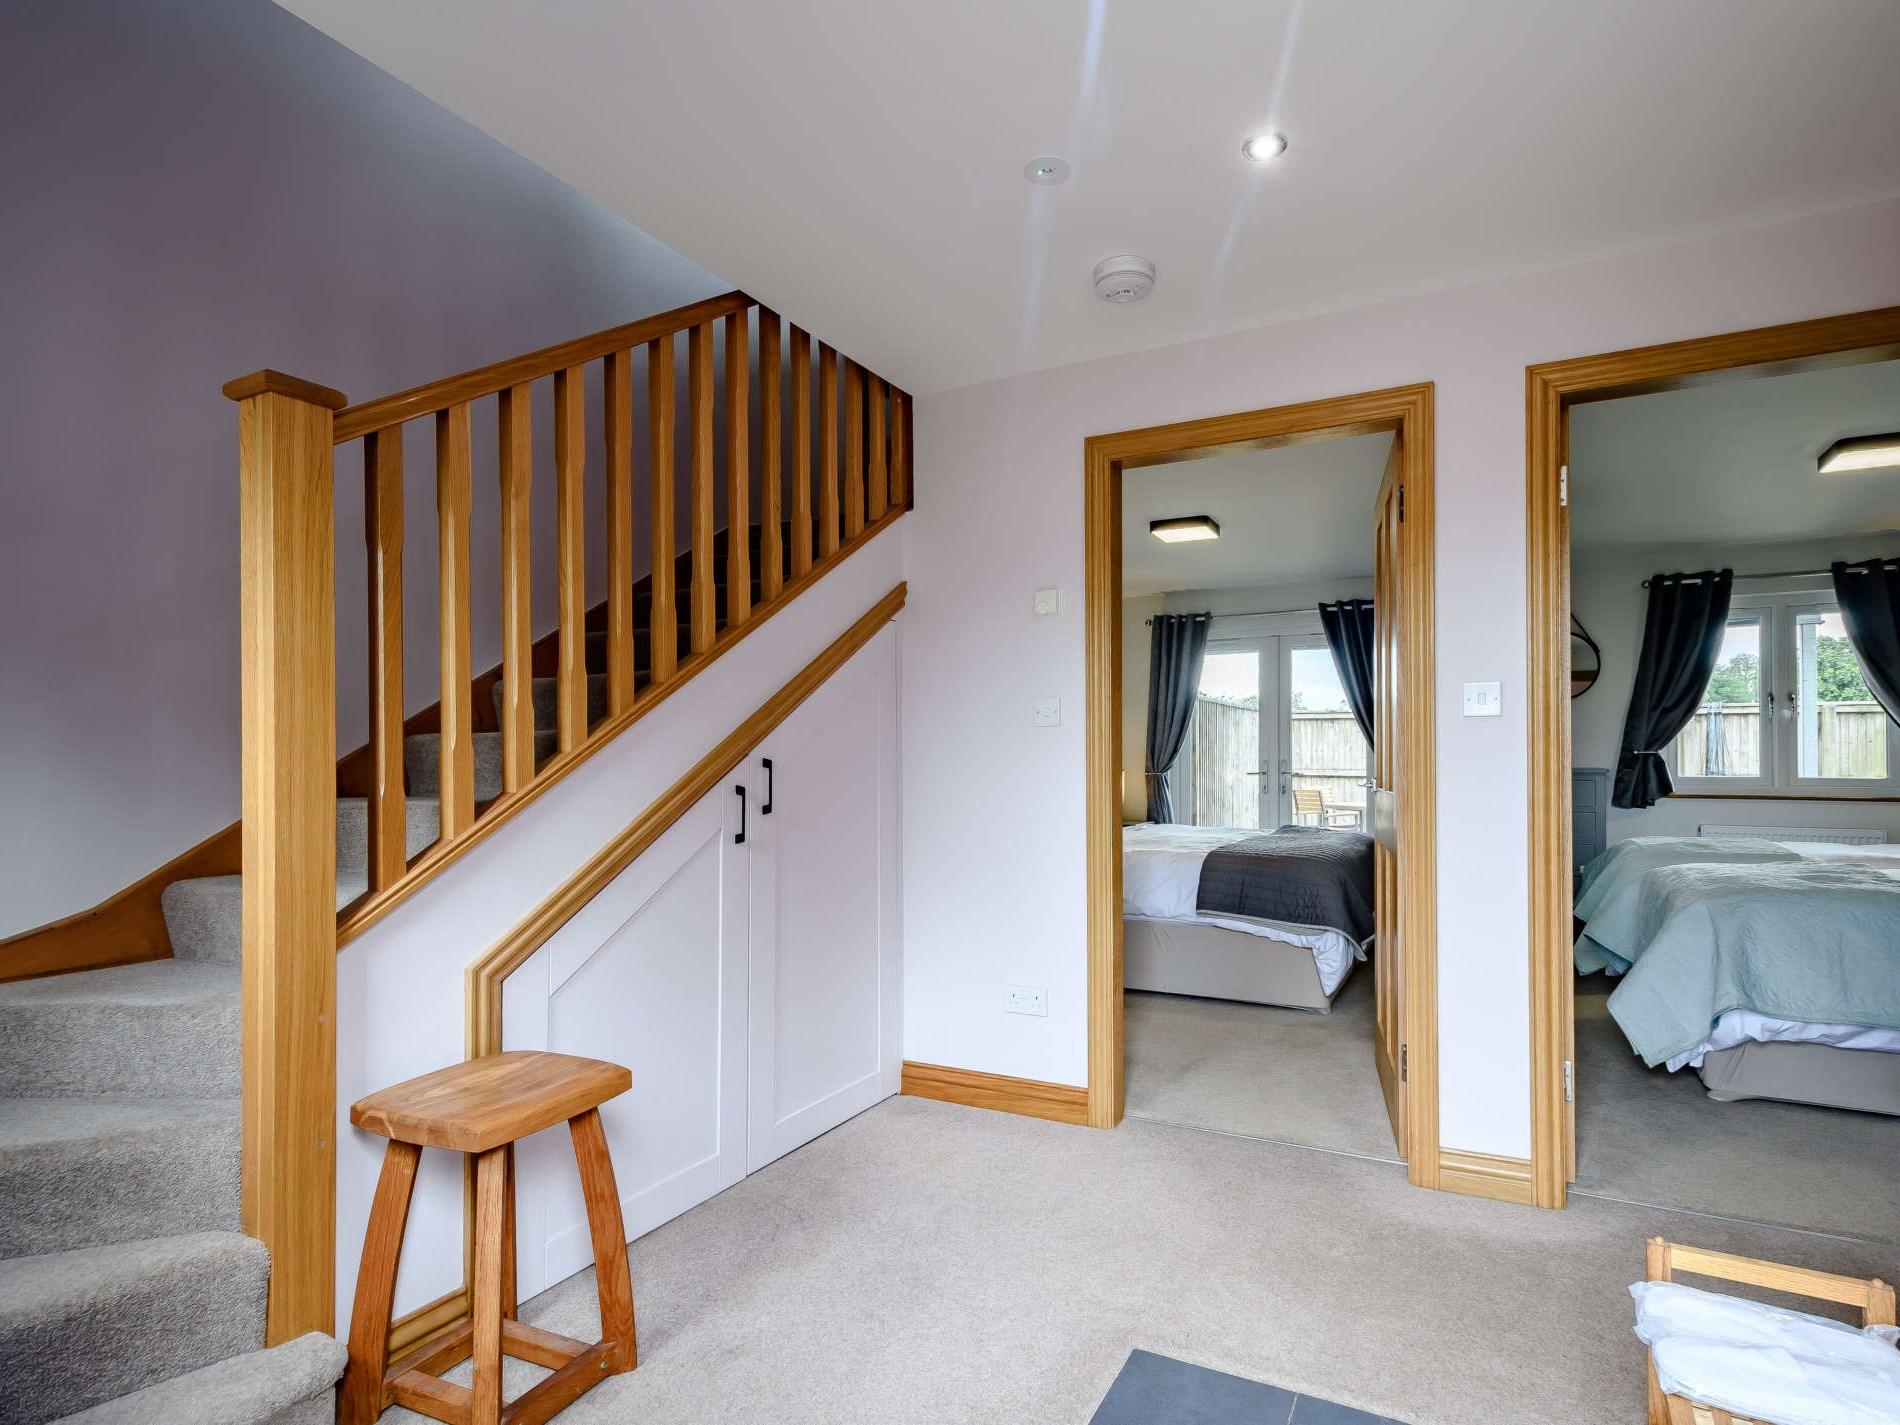 2 Bedroom House in Dumfries and Galloway, Ayrshire and Dumfries & Galloway